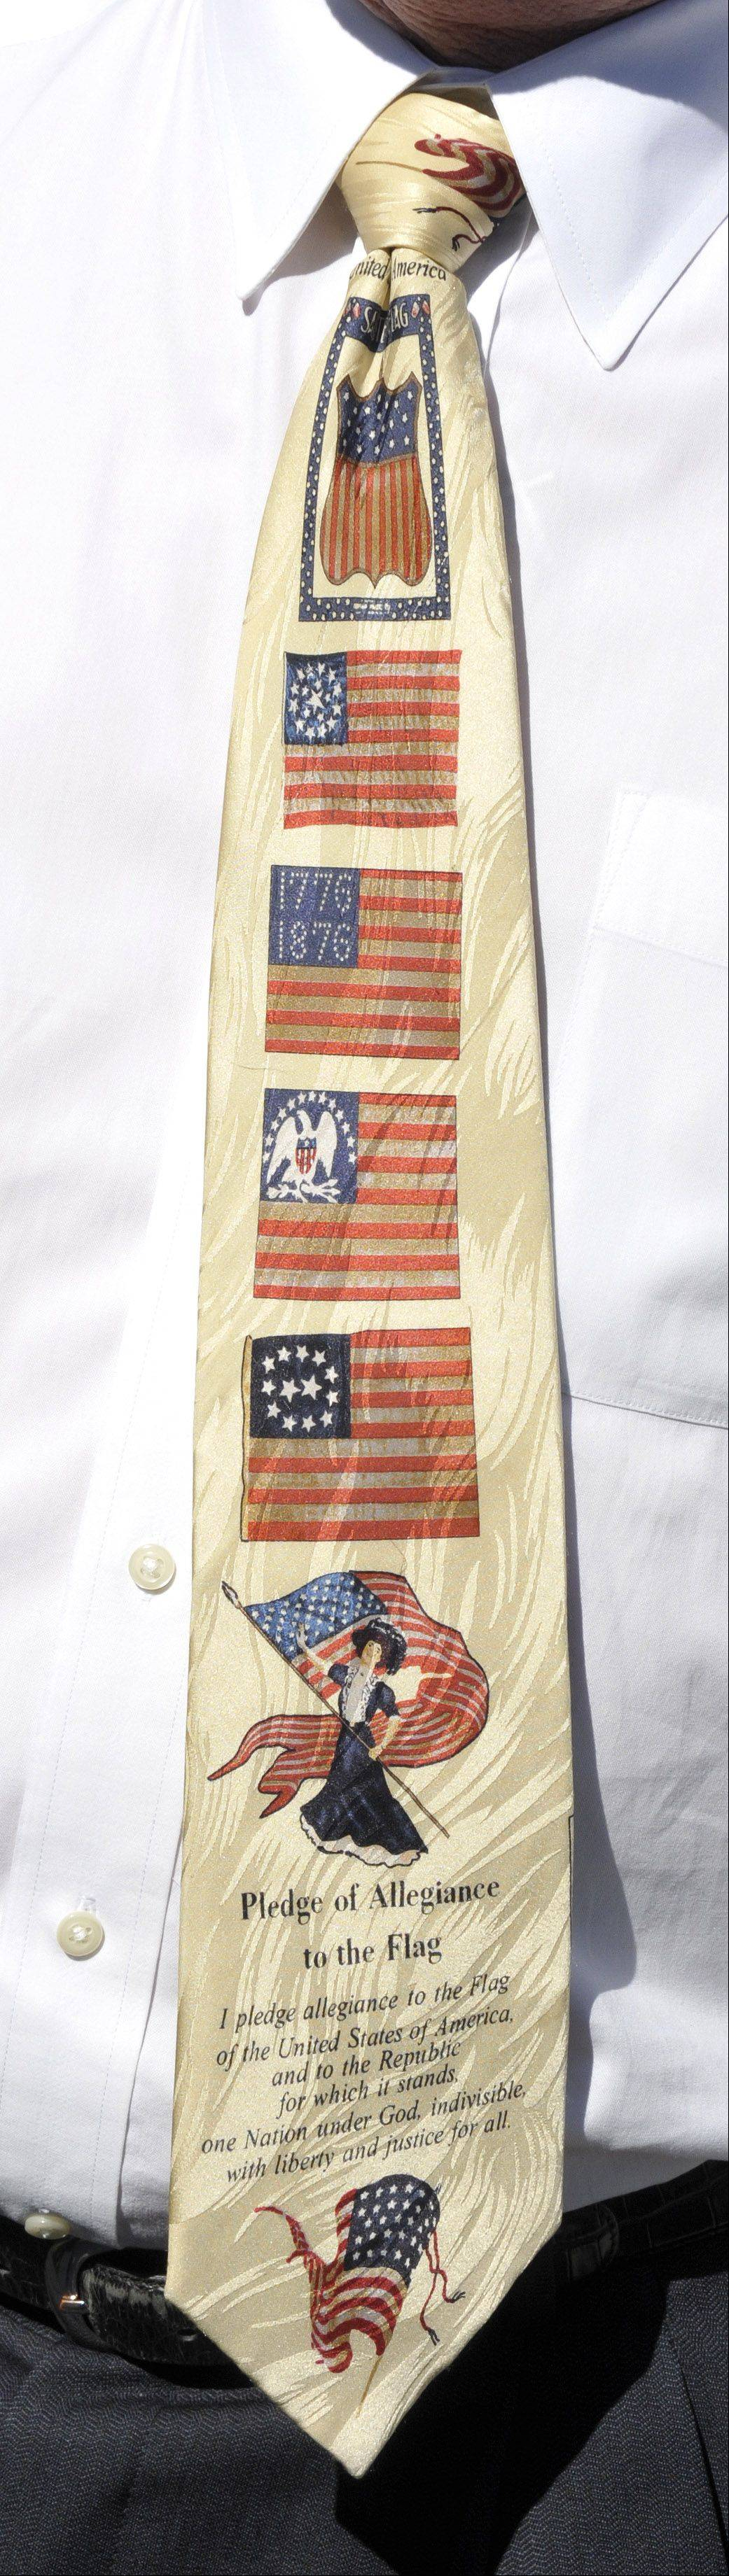 Patriotism exudes from business owner Mickey Straub as evidenced by his Pledge of Allegiance tie.